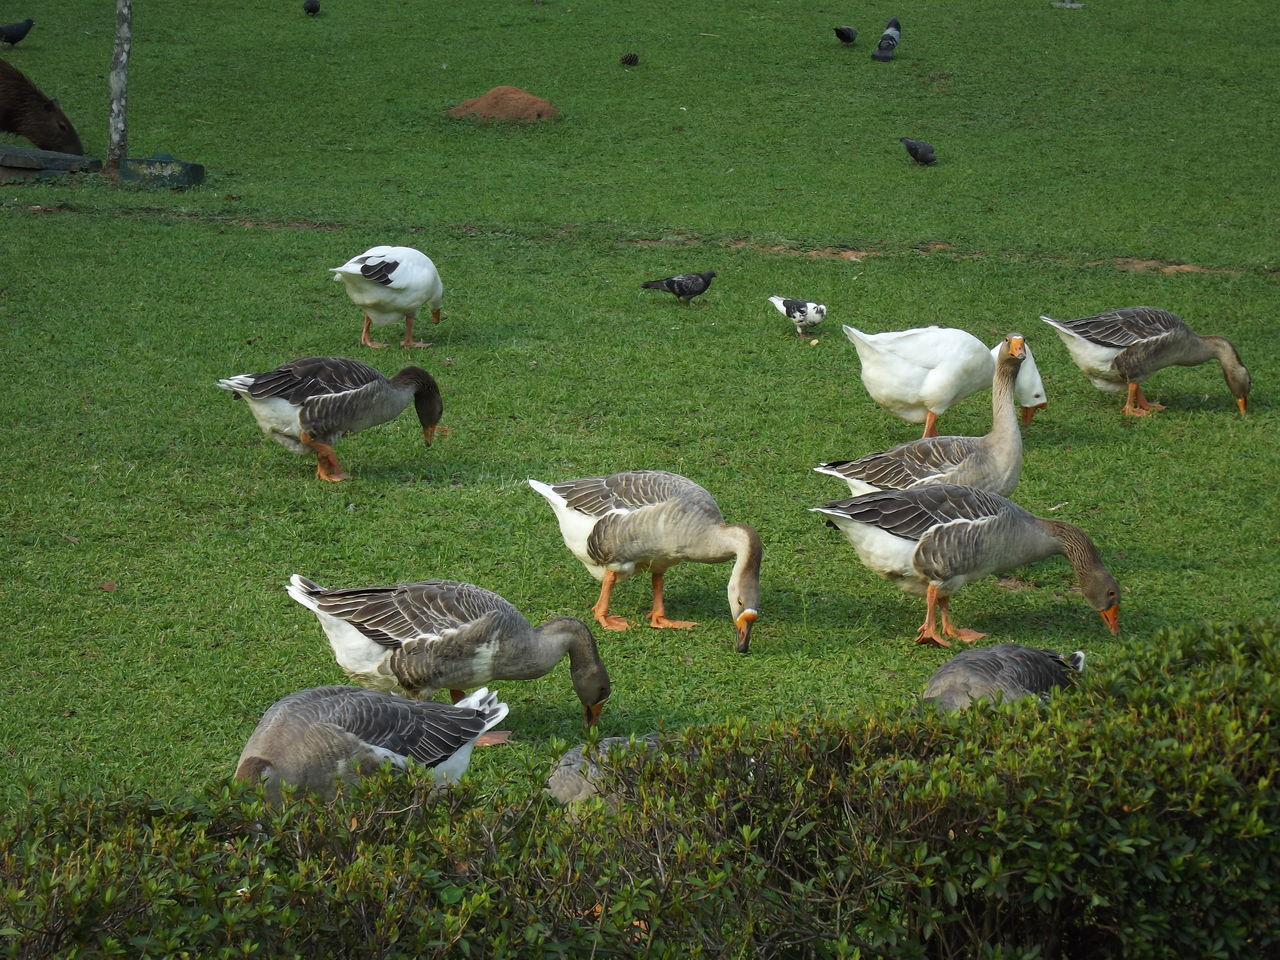 animal themes, bird, grass, field, animals in the wild, animal wildlife, large group of animals, day, nature, green color, outdoors, no people, goose, beauty in nature